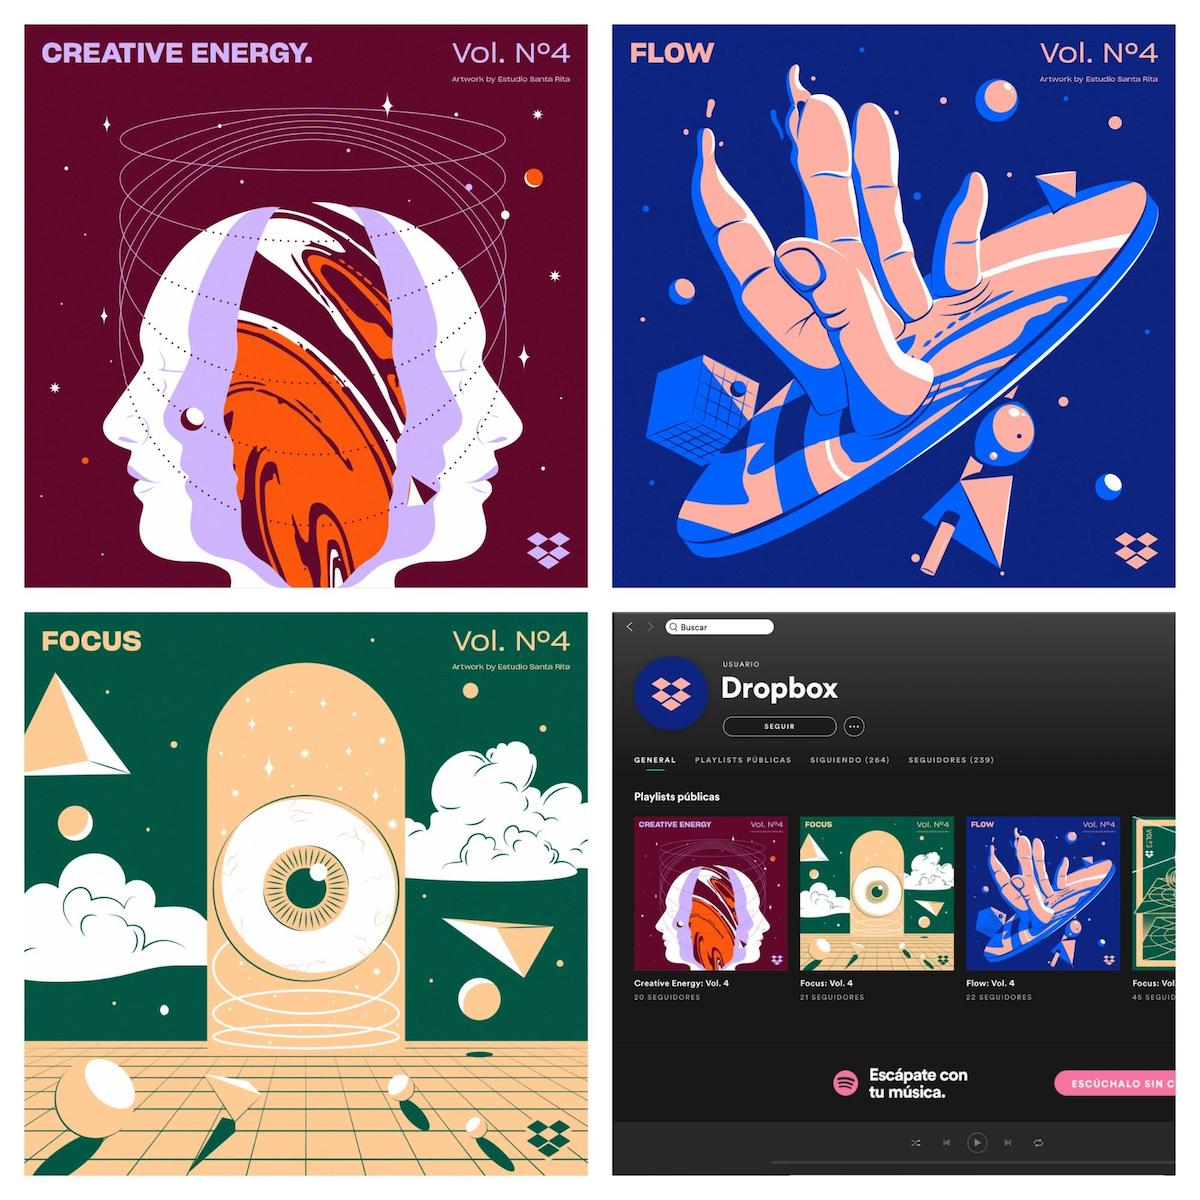 Graphic Design Trends 2020 - Abstract Illustrations 8